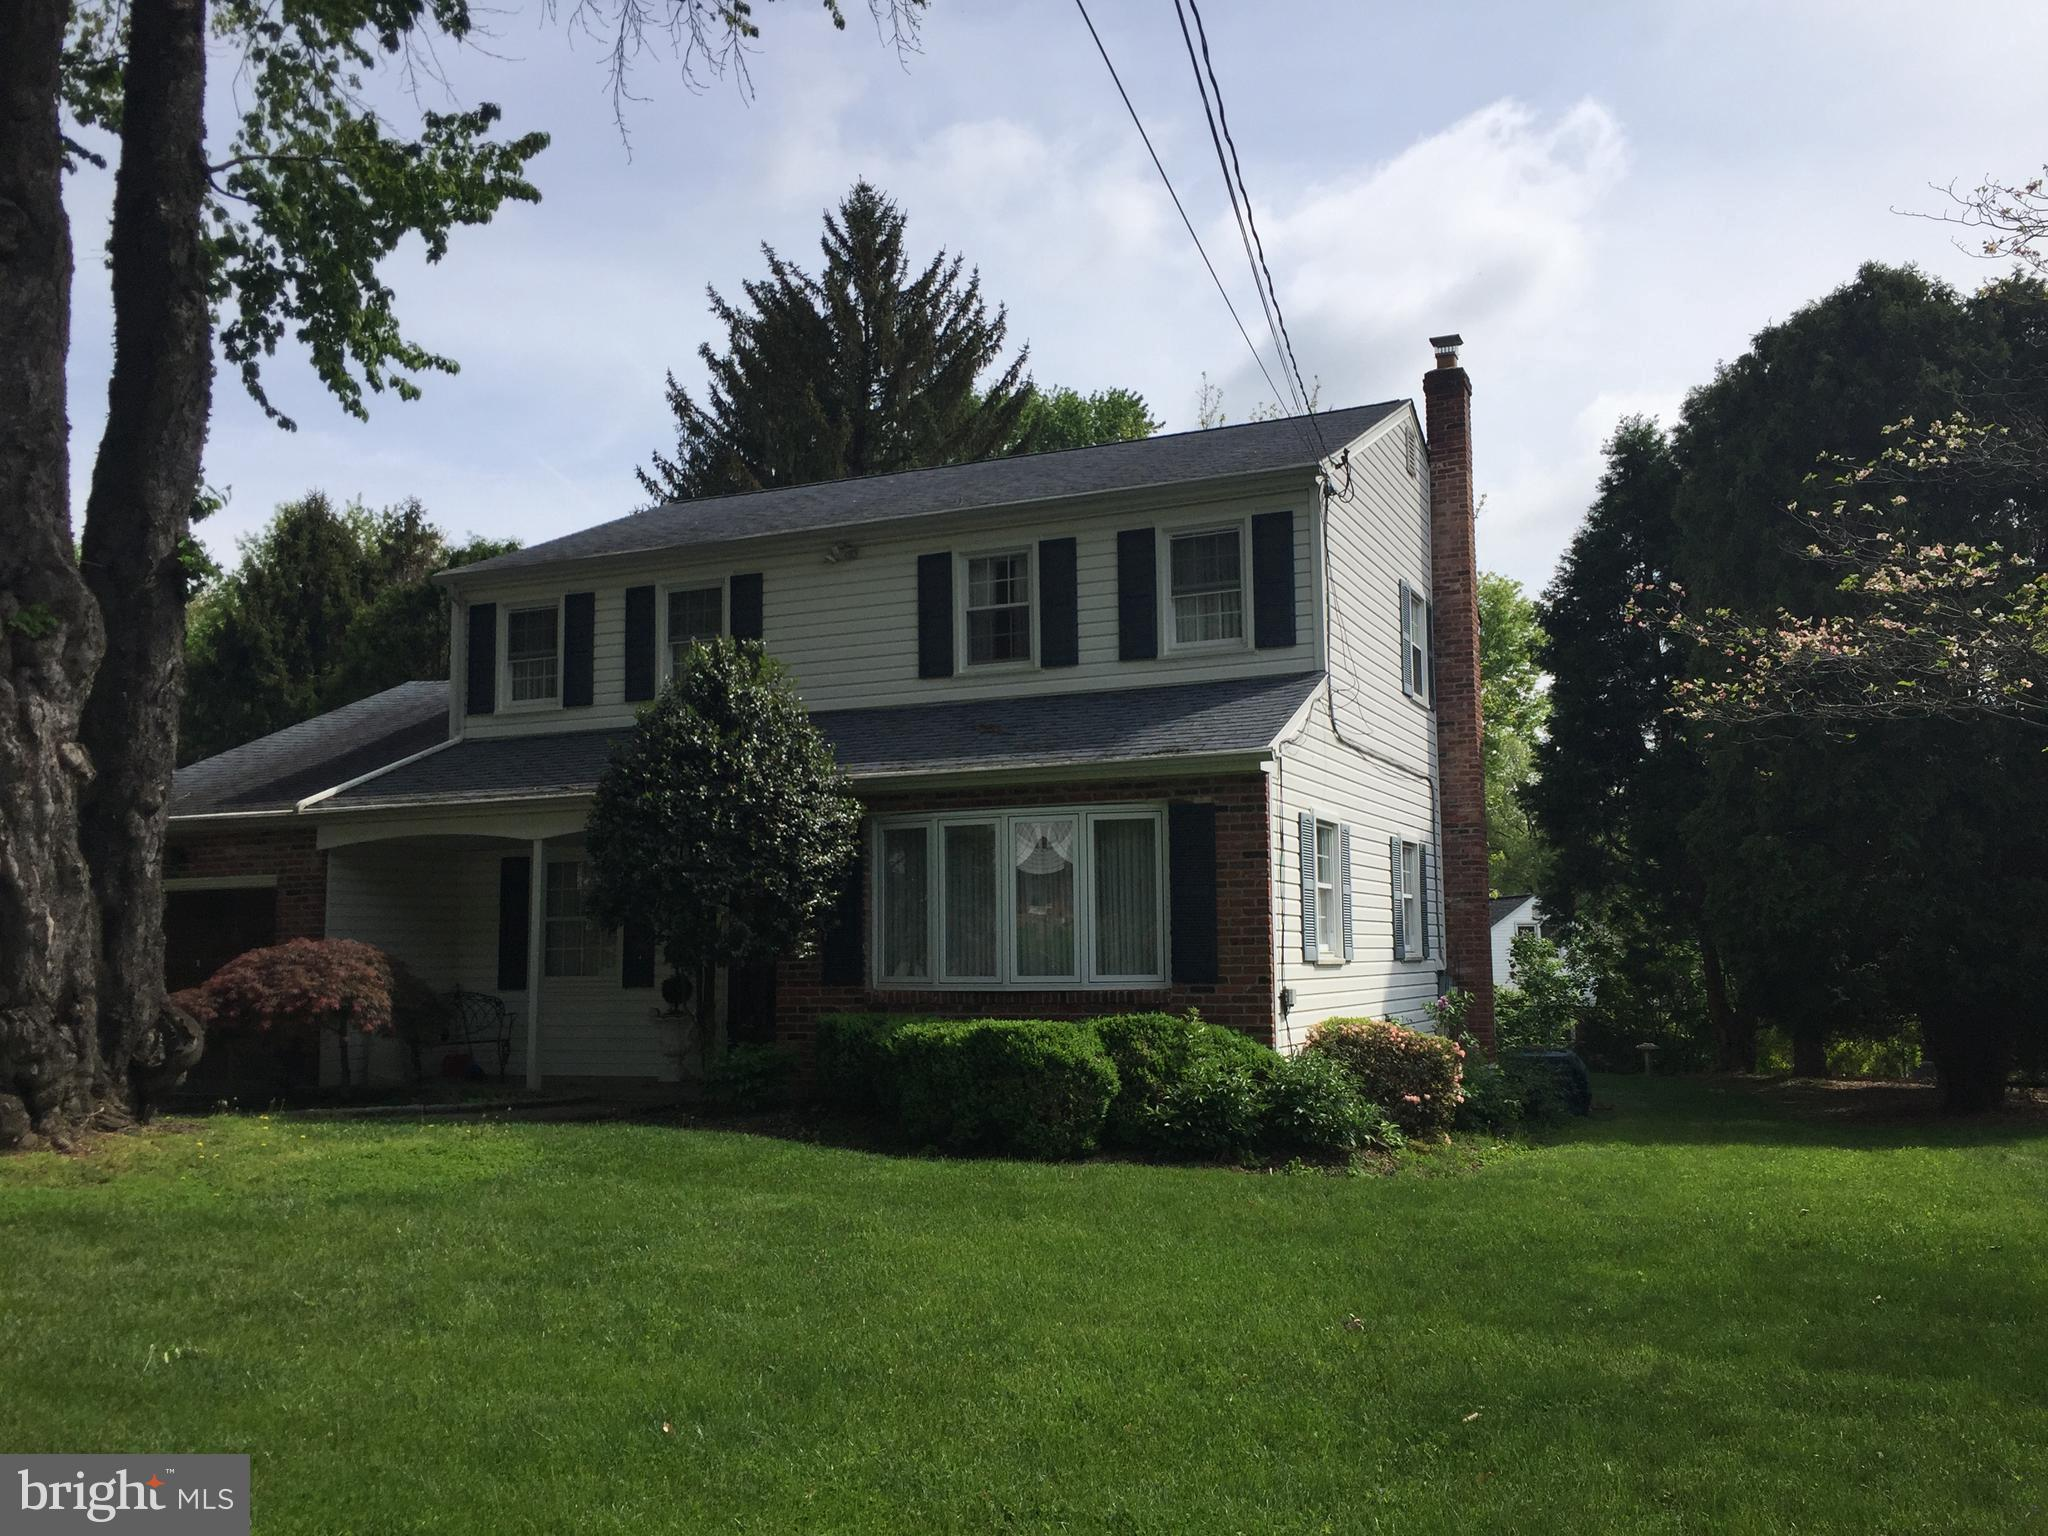 Great Brick & Vinyl sided Colonial with newer Kitchen, & Baths. 3 Bedrooms, 2.5 Baths, Garage, Awning covered Rear Deck overlooking nice backyard. Front covered Porch, Marble floored Entry Foyer, Bright and spacious Living Room w/bay window, Dining Room w/ hardwood floors & chair rail, Newer Kitchen w/ granite counters, C/tile flooring & backsplash, b/i micro, electric cooktop, double wall oven, recessed lights adjoining sunny Breakfast Room  w/ C/Tile floor, bay window & large Laundry closet w/ washtub, Powder Room, Step down to Family Room w/ brick fireplace (gas), hardwood floors & door to large Rear Deck w/ awning. UPPER LEVEL: Large Master Bedroom w/ hardwood floors, c/fan, walk in closet, Newer C/Tile Master Bathroom w/ vanity, shower & heat lamp, 2 Additional Nice size Bedrooms w/ hardwood floors & double closets, Newer C/Tile Hall Bath w/ whirlpool tub/shower, granite topped vanity. BASEMENT has play/game room , plus Cedar closet, storage and utilities. Replacement Windows, Weil McLain Gas Boiler, Central Air, Roof & Siding (approx 2011), Composite Deck (approx 2014), 200 amp CB, 1 car Garage w/ opener. Close to Twp Park, shopping & transportation including regional rail stop. Award winning Springfield Schools.